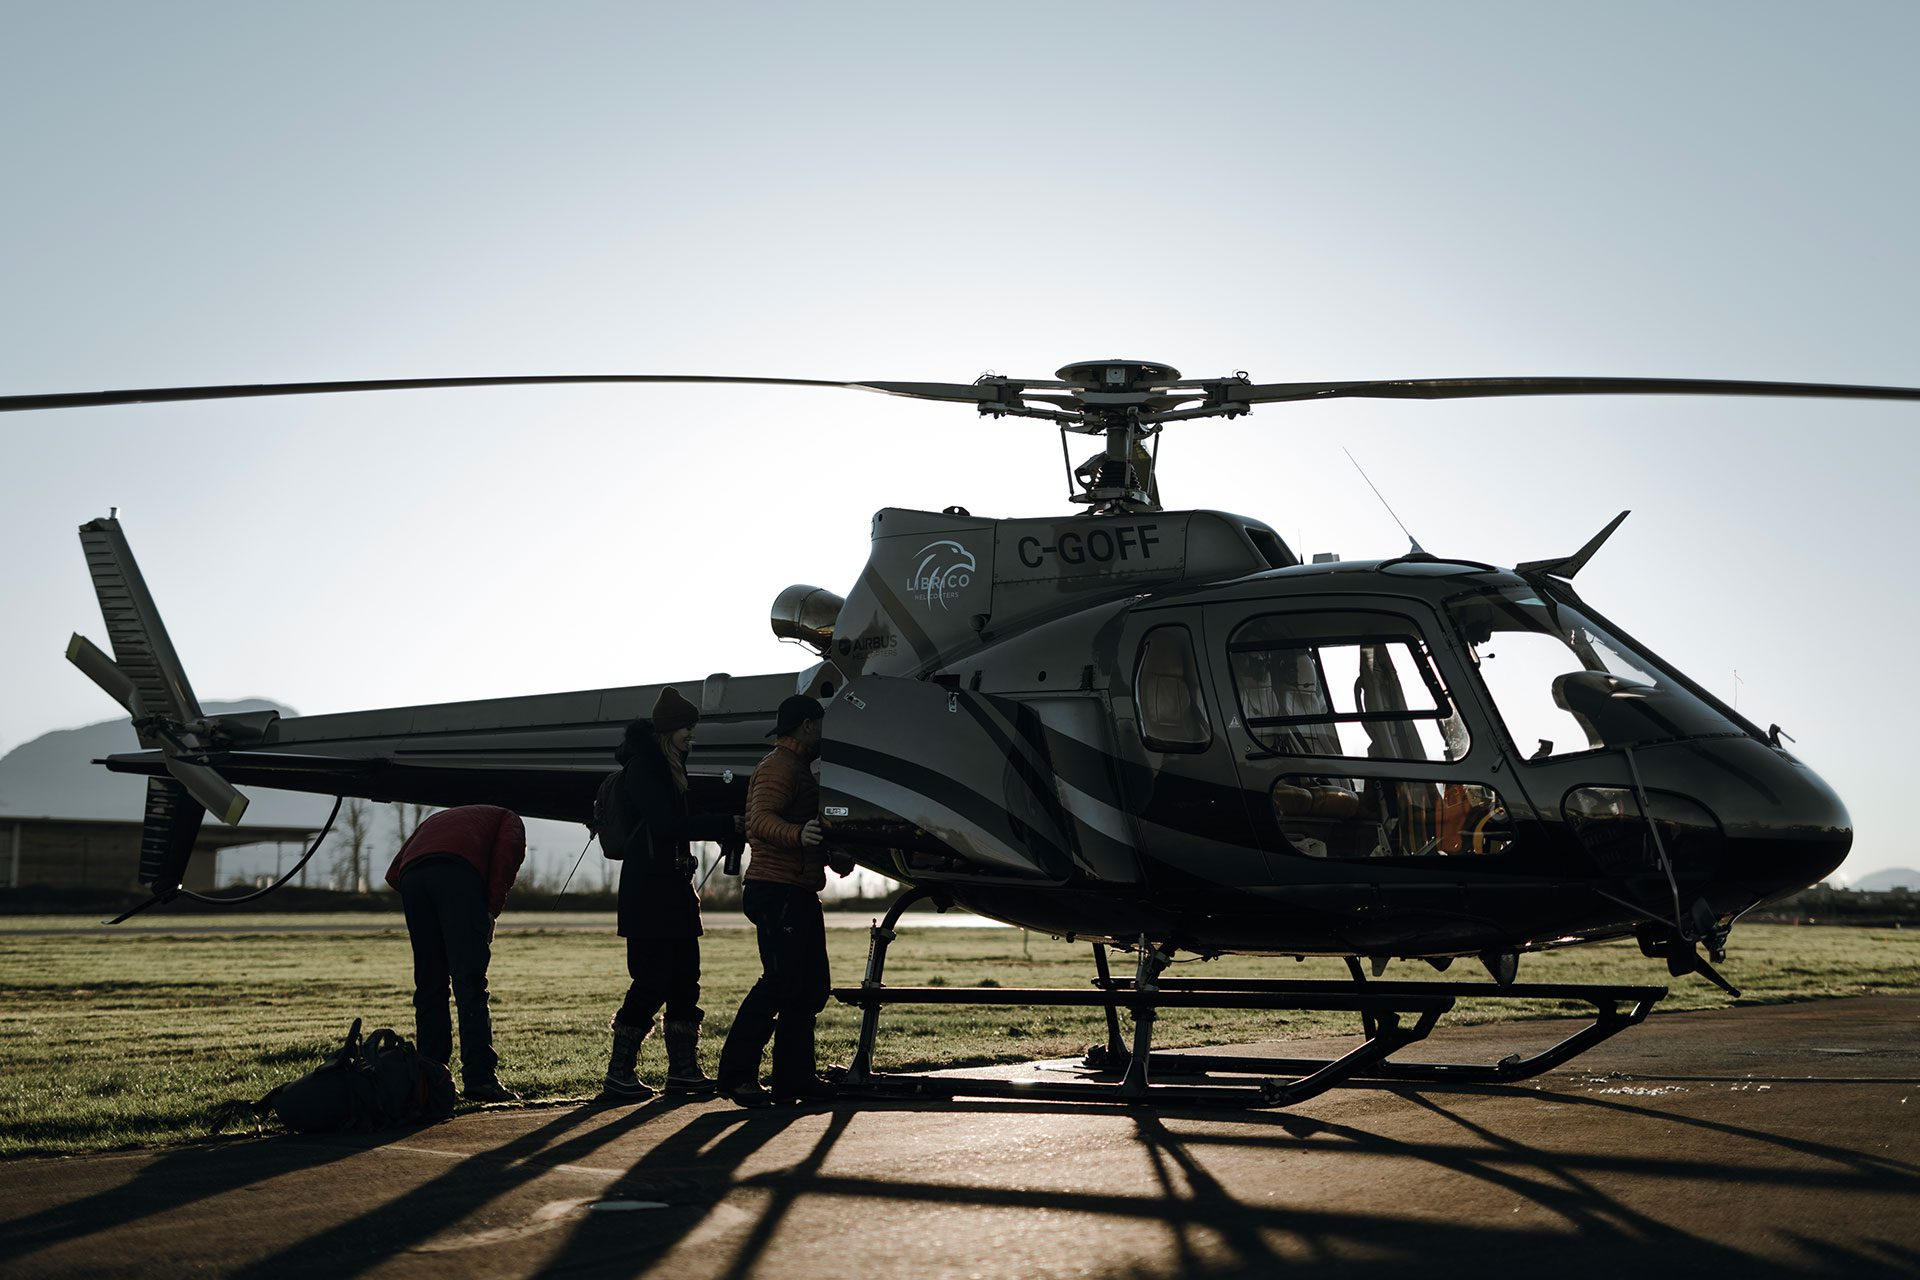 Librico's own Falcon Helicopter getting ready for a heli tour in Chilliwack, BC